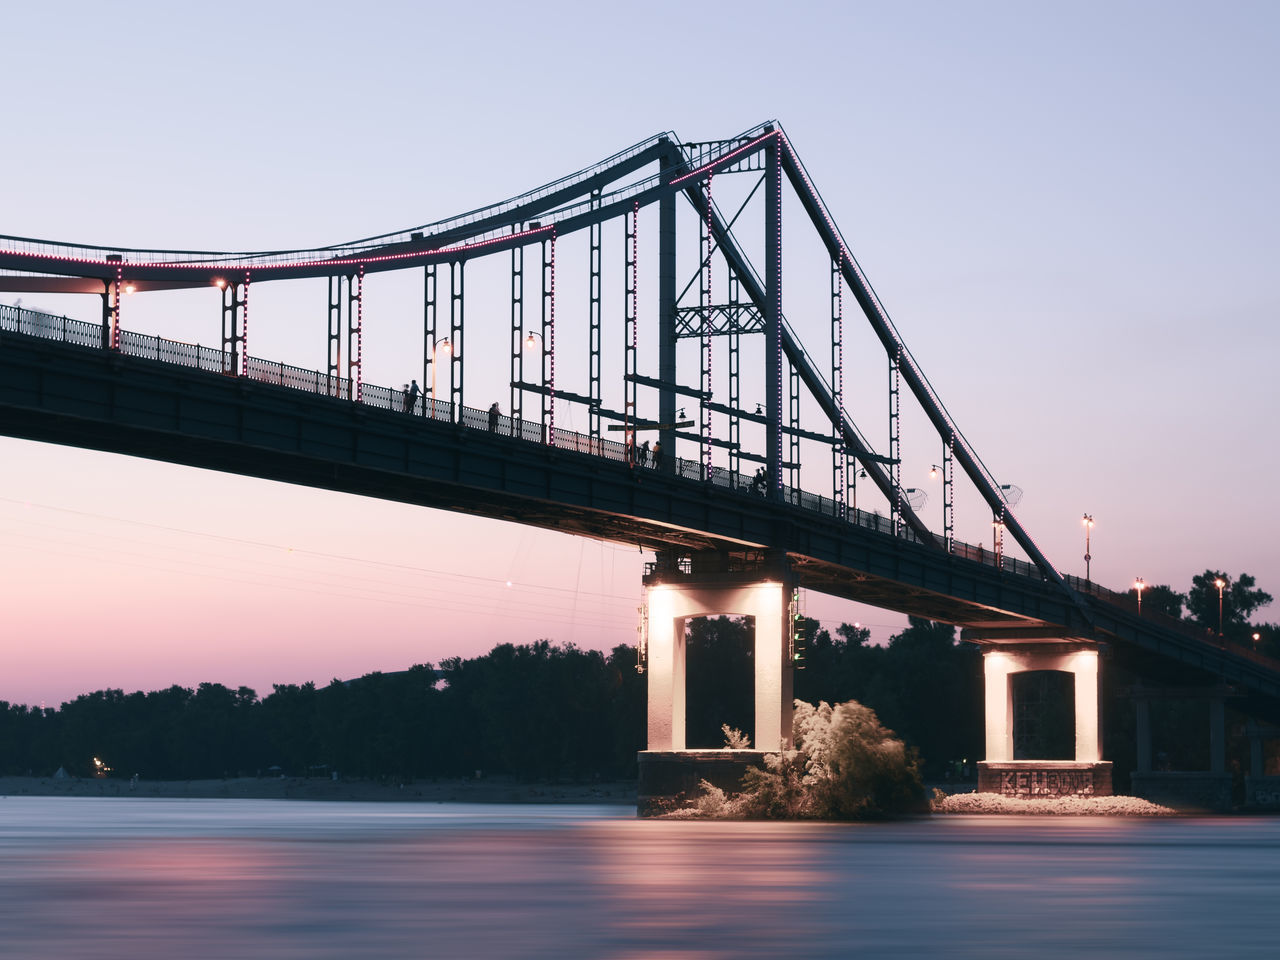 Low Angle View Of Bridge Over River Against Clear Sky At Dusk